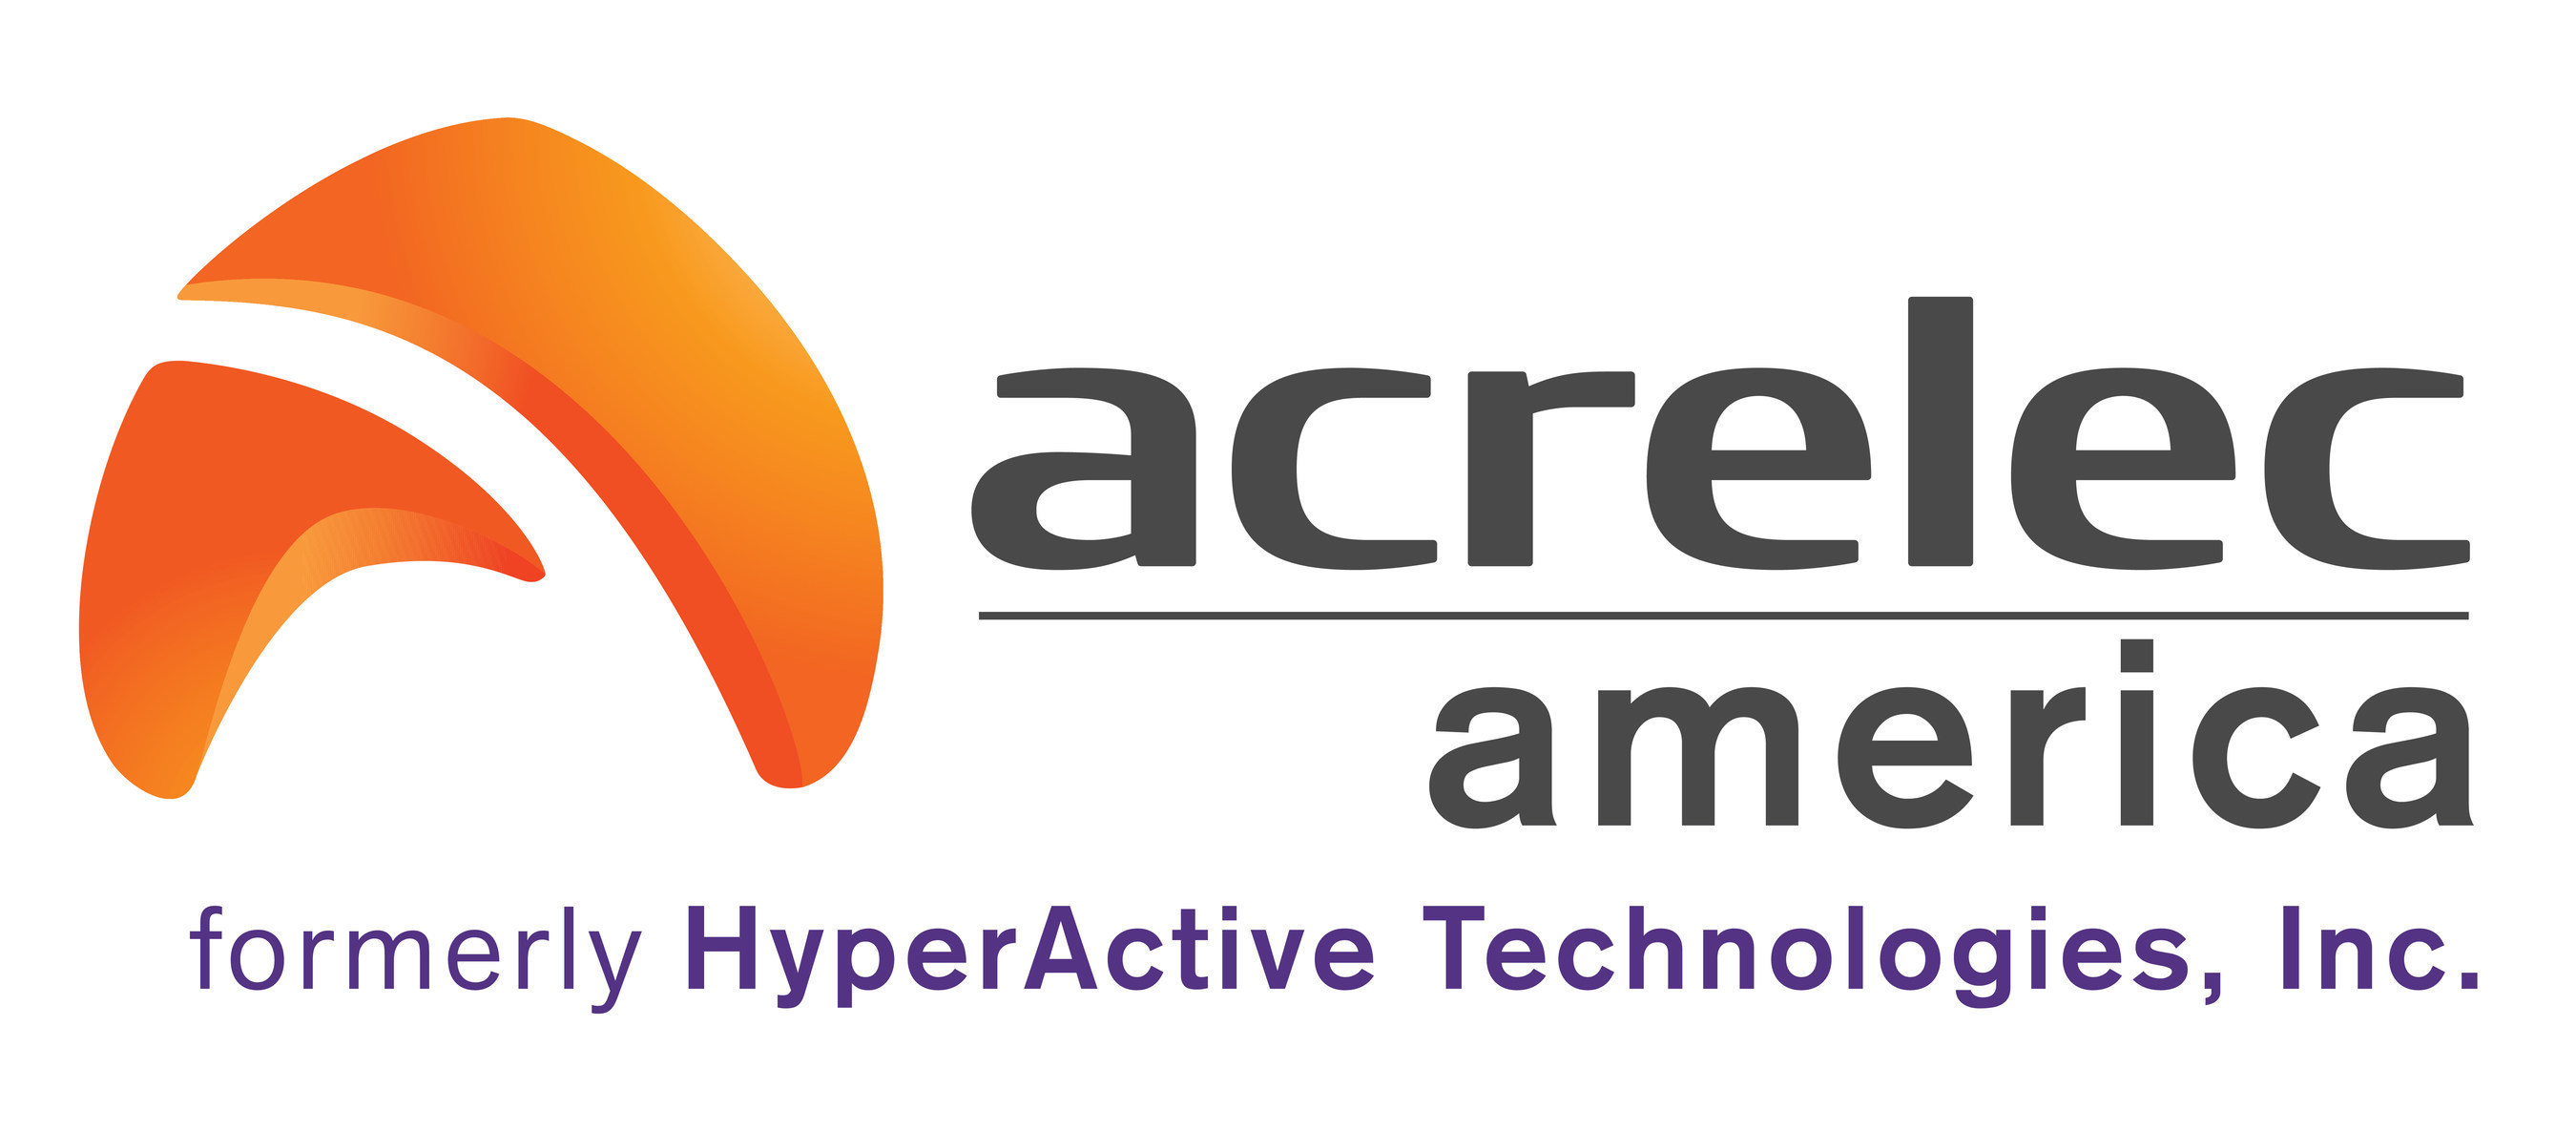 Acrelec America, formerly HyperActive Technologies, is part of the Acrelec Group, a leading digital transformation company that provides the world's largest restaurant, retail and other industry's well-known brands with software, hardware and services to reimagine the customer experience. Acrelec pioneered digital kiosks in quick service restaurants and gained prominence developing digital commerce platforms for the world's largest retail brands. Acrelec has over 20,000 installations in 49 countries and...